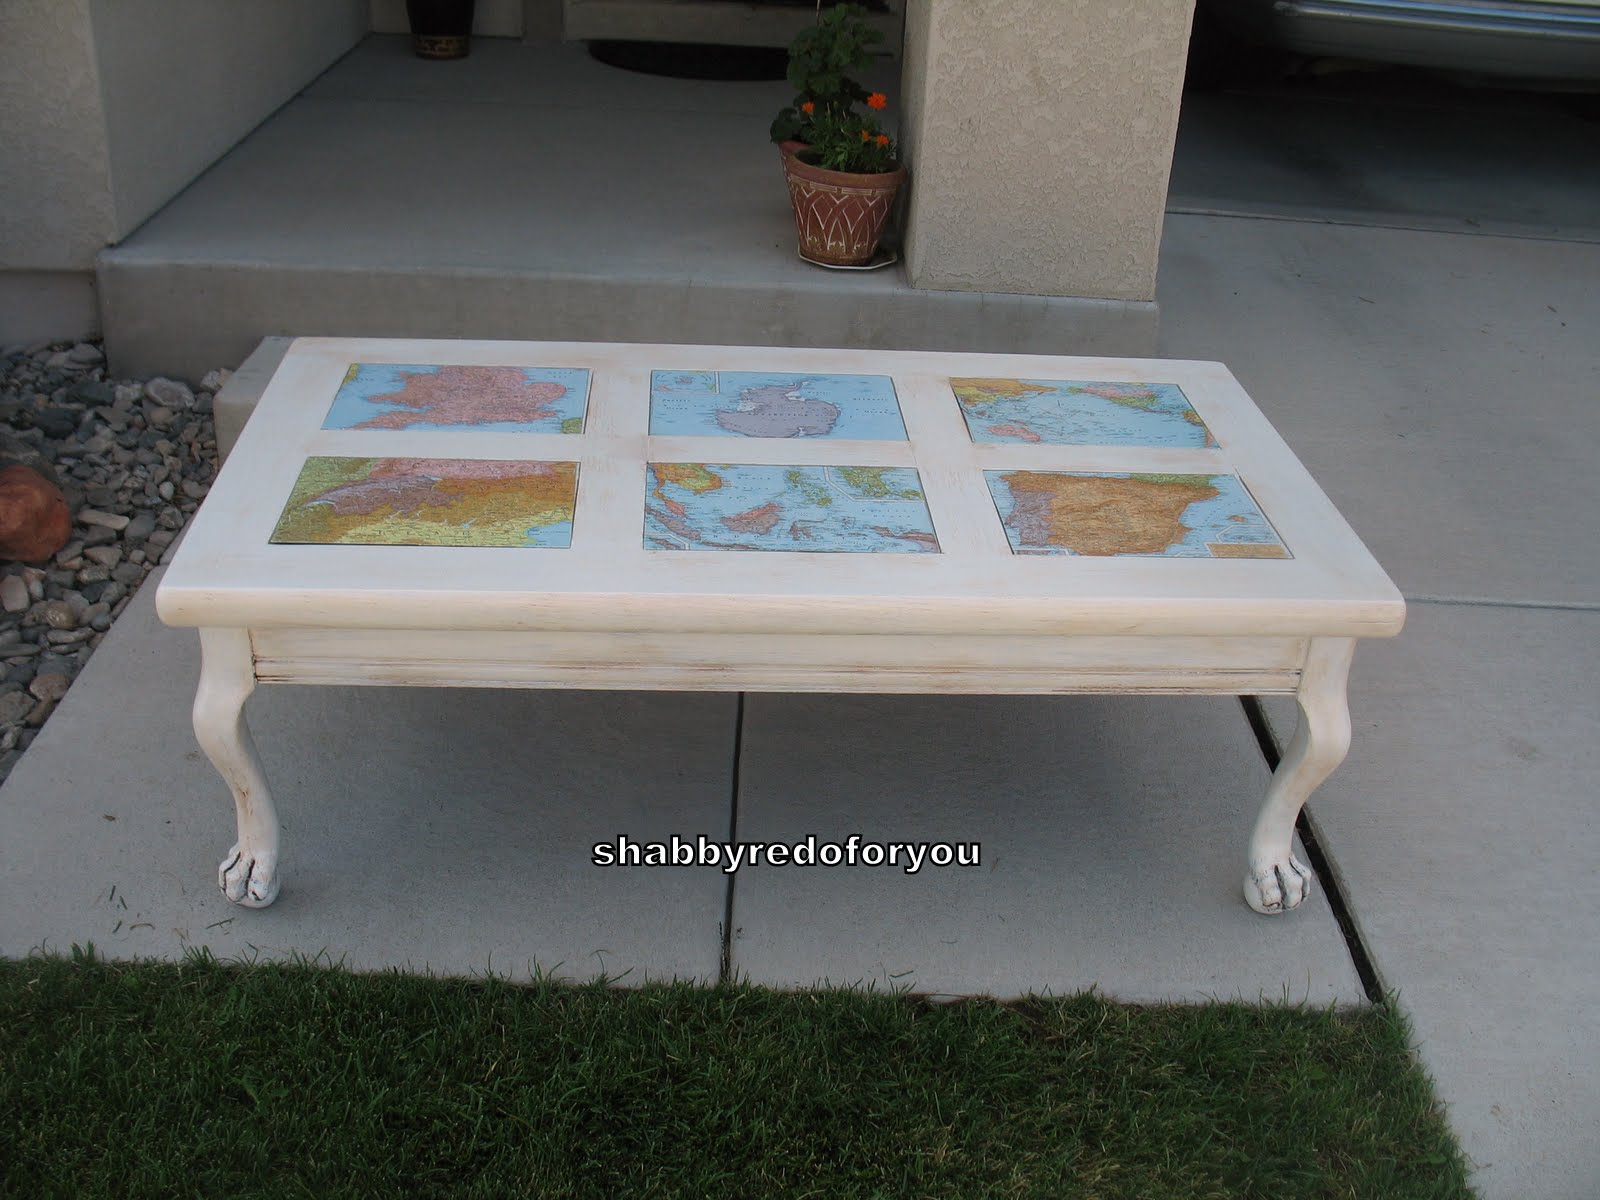 Shabby Redo For You Coffee Table With Decoupage